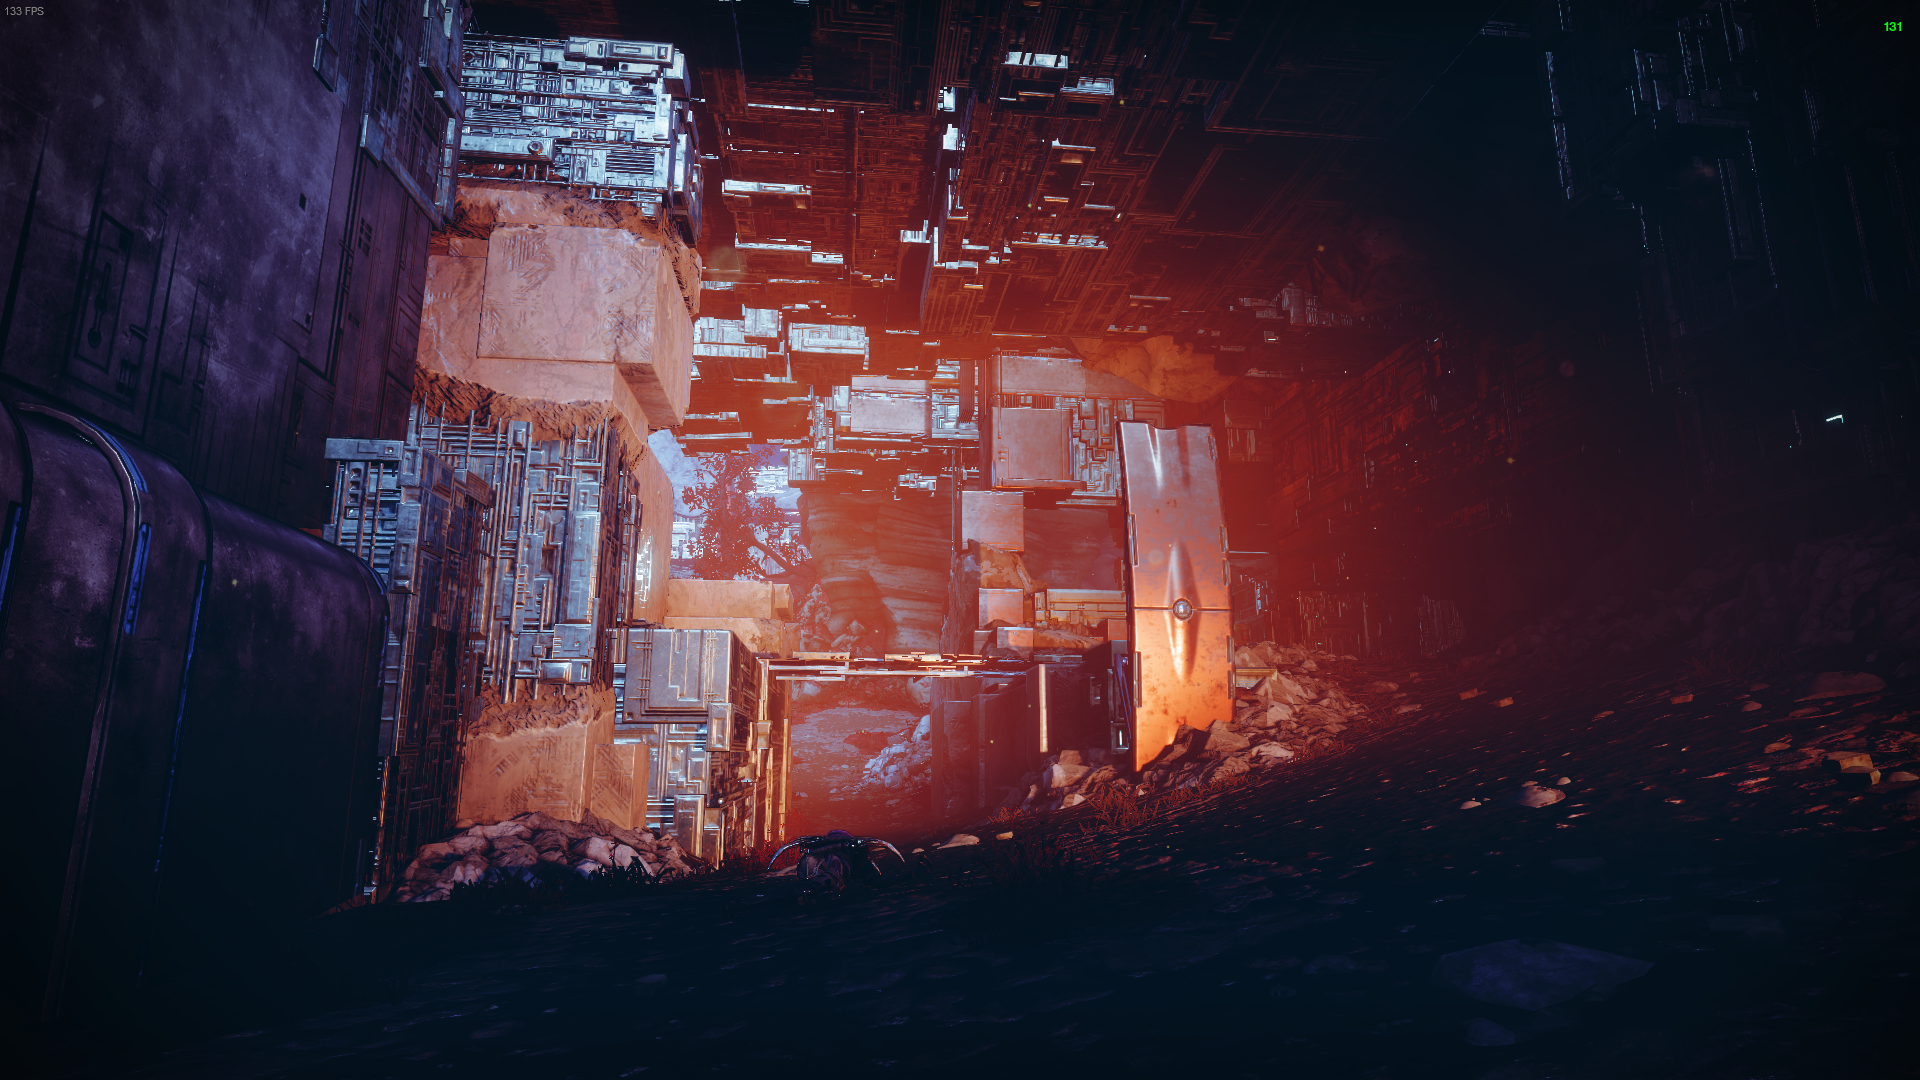 Vex walls and materials line all but the floor here. Jagged, square shapes jut out adding an incredibly amount of detail to what is just a ceiling.